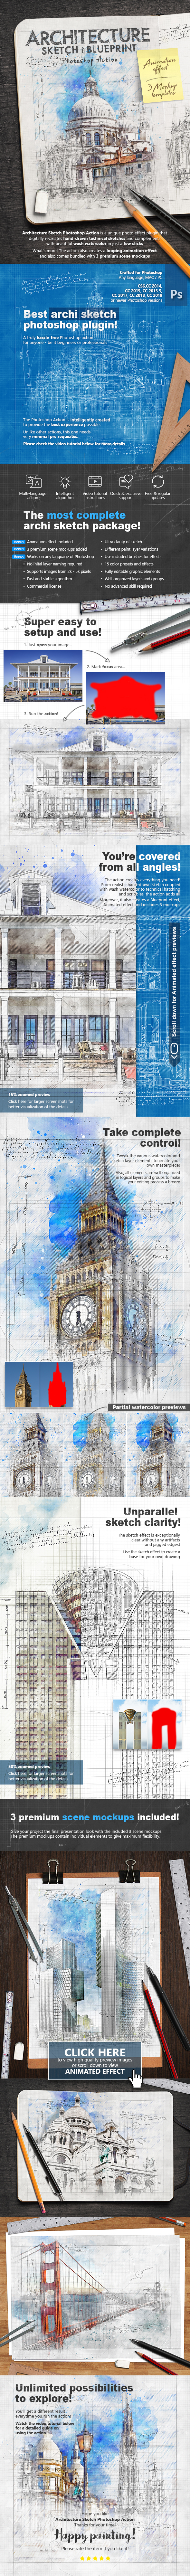 Graphicriver   Animated Architecture Sketch and Blueprint Photoshop Action Free Download free download Graphicriver   Animated Architecture Sketch and Blueprint Photoshop Action Free Download nulled Graphicriver   Animated Architecture Sketch and Blueprint Photoshop Action Free Download